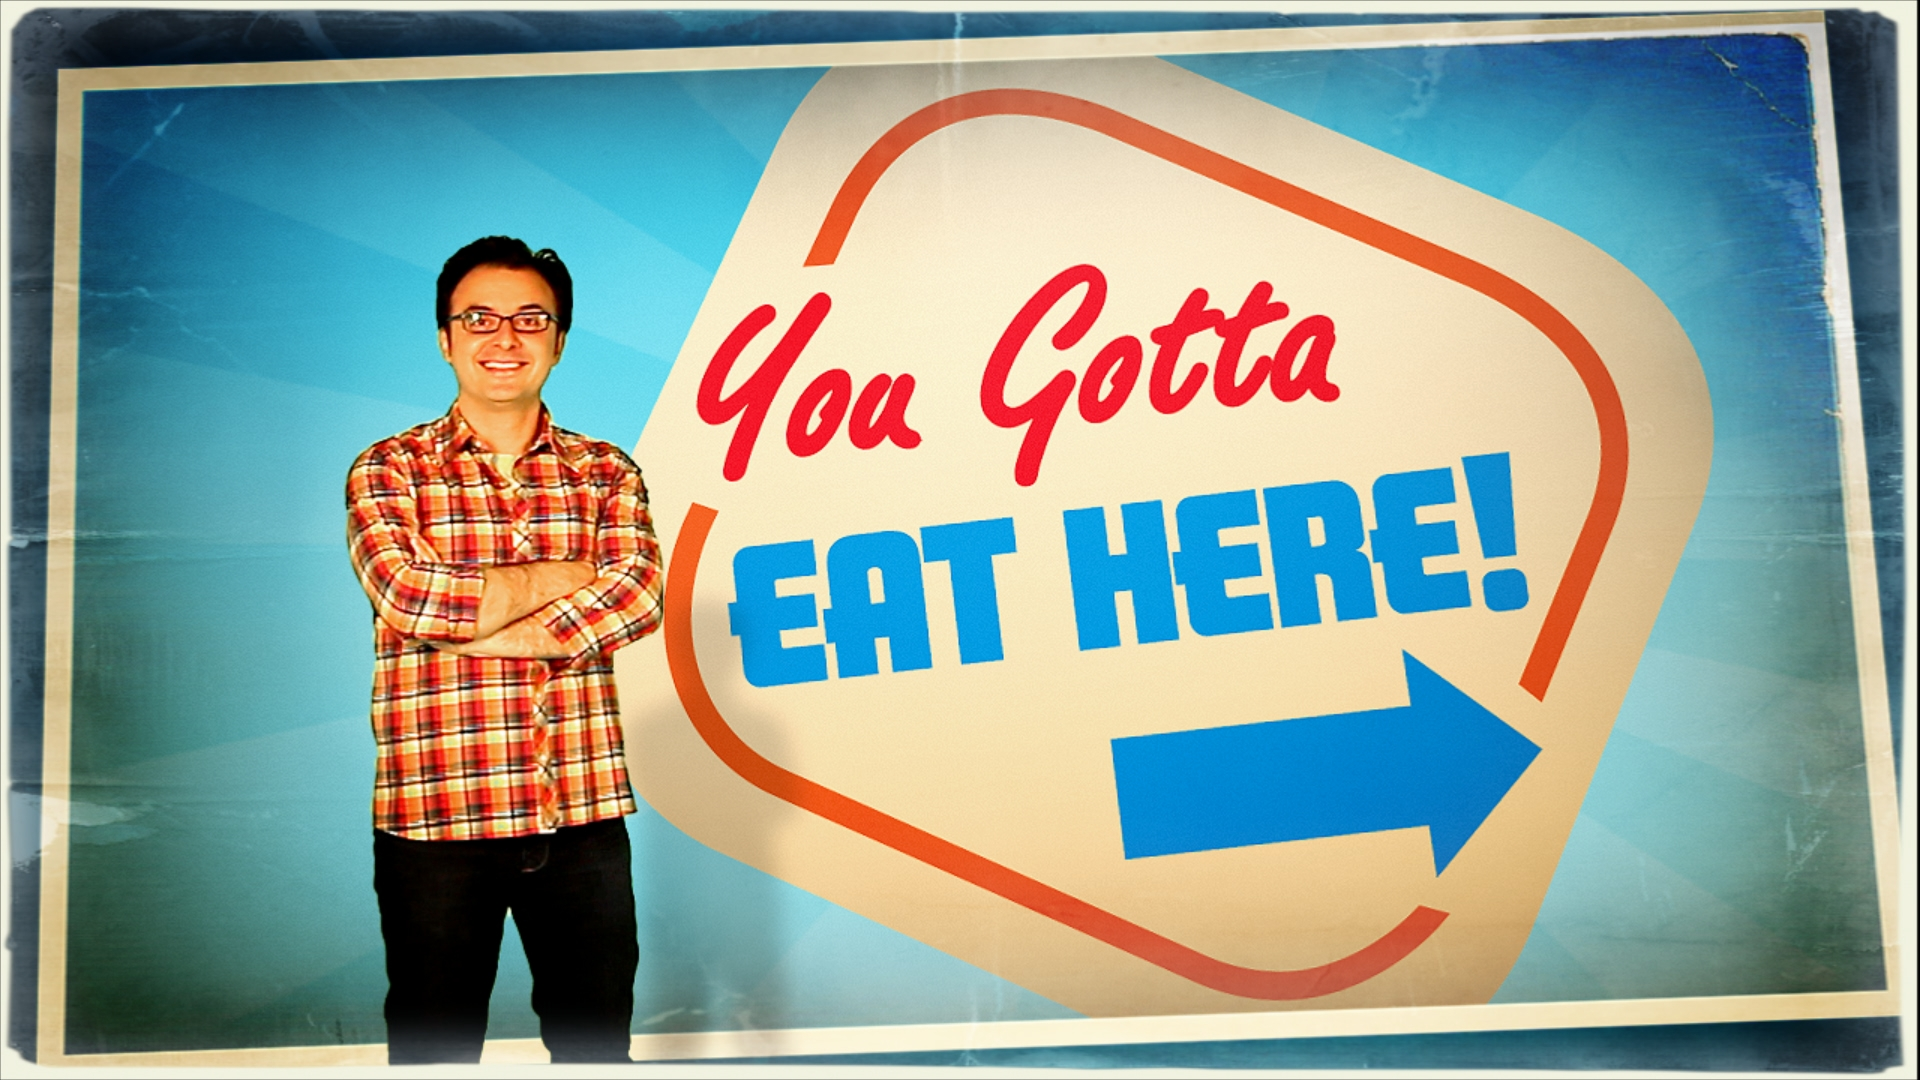 You gotta eat here logo